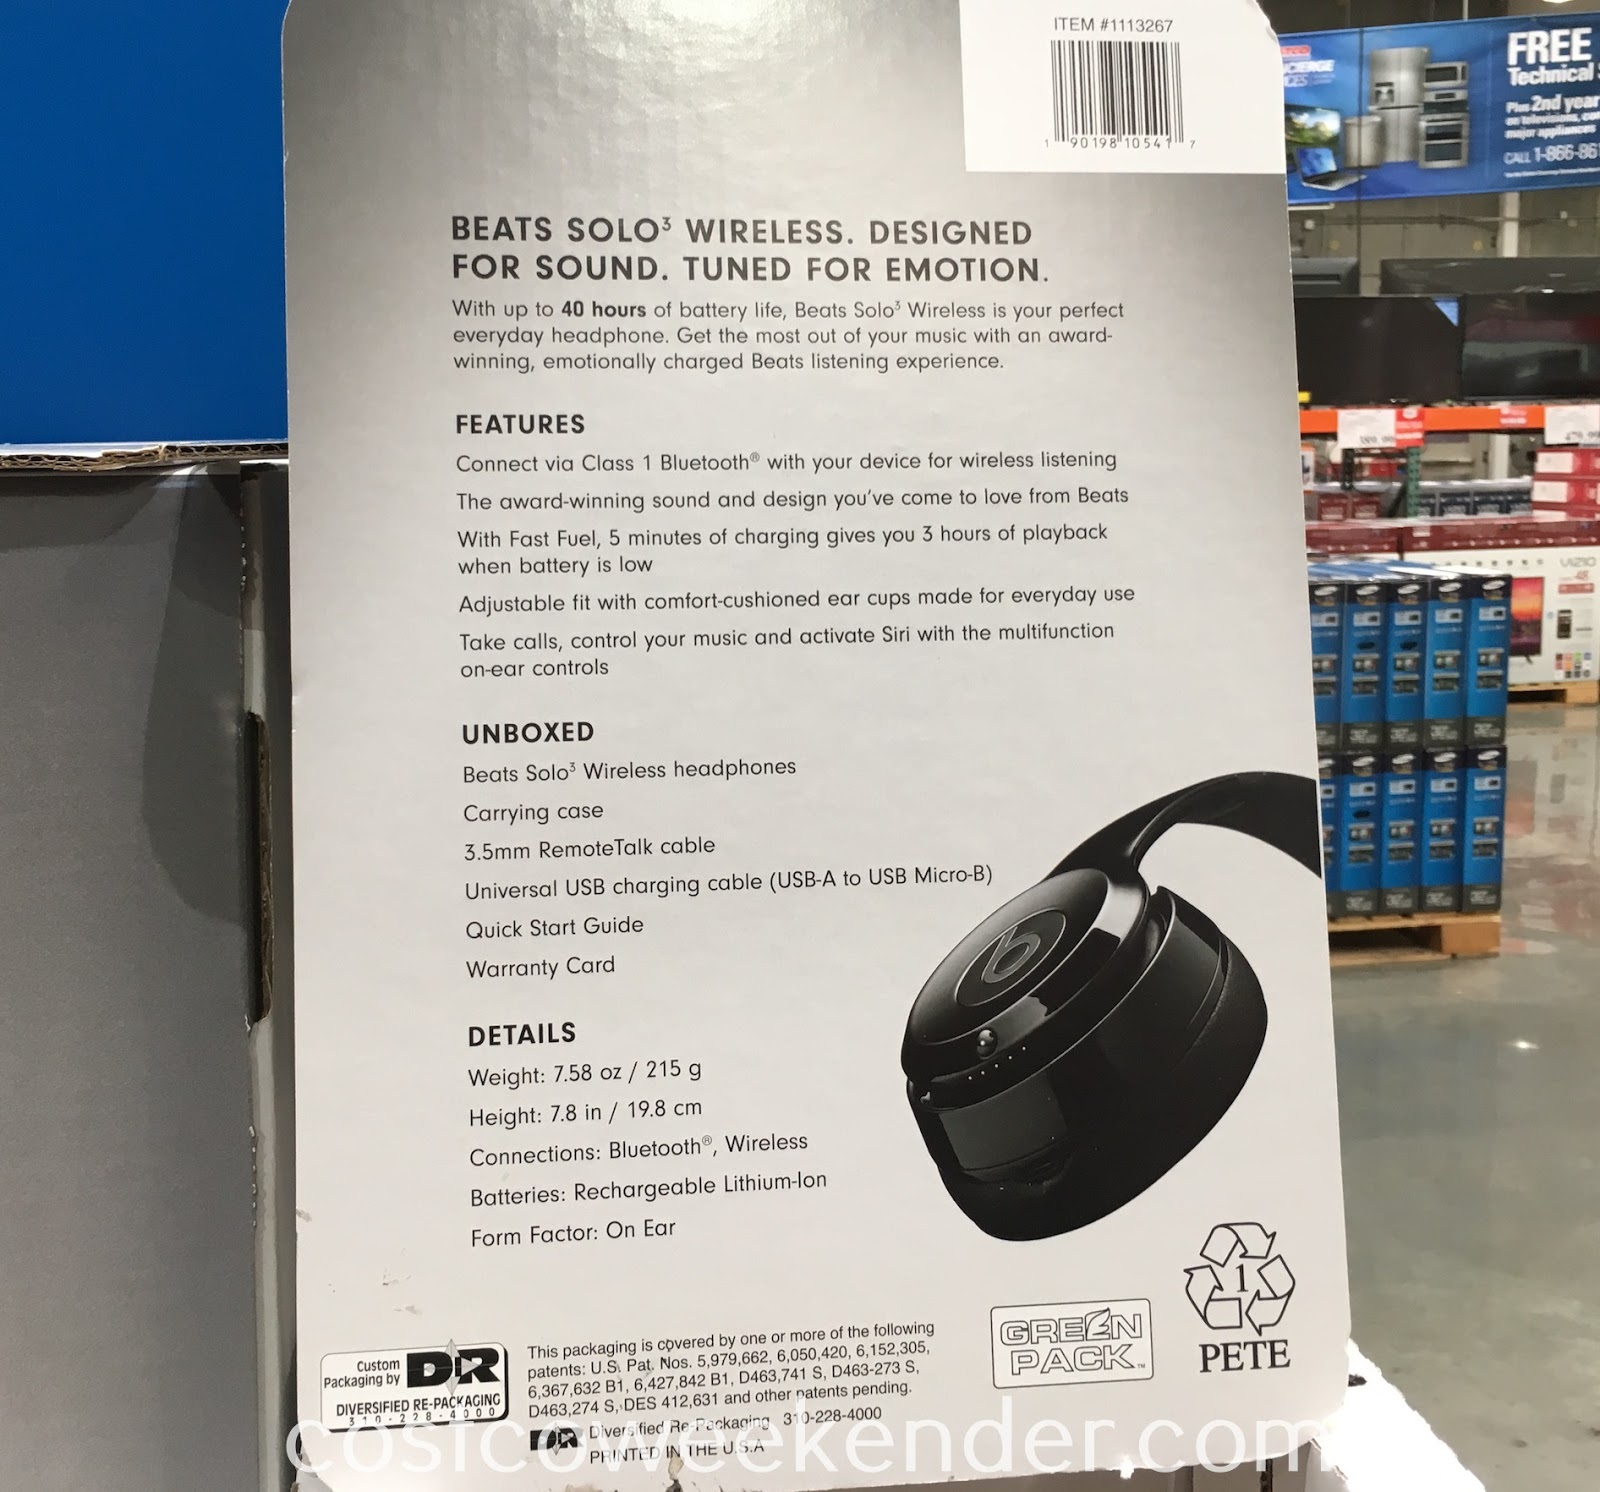 Costco 1113267 - Beats Solo 3 Wireless Bluetooth Headphones - The freedom of wireless and the sound quality of Beats